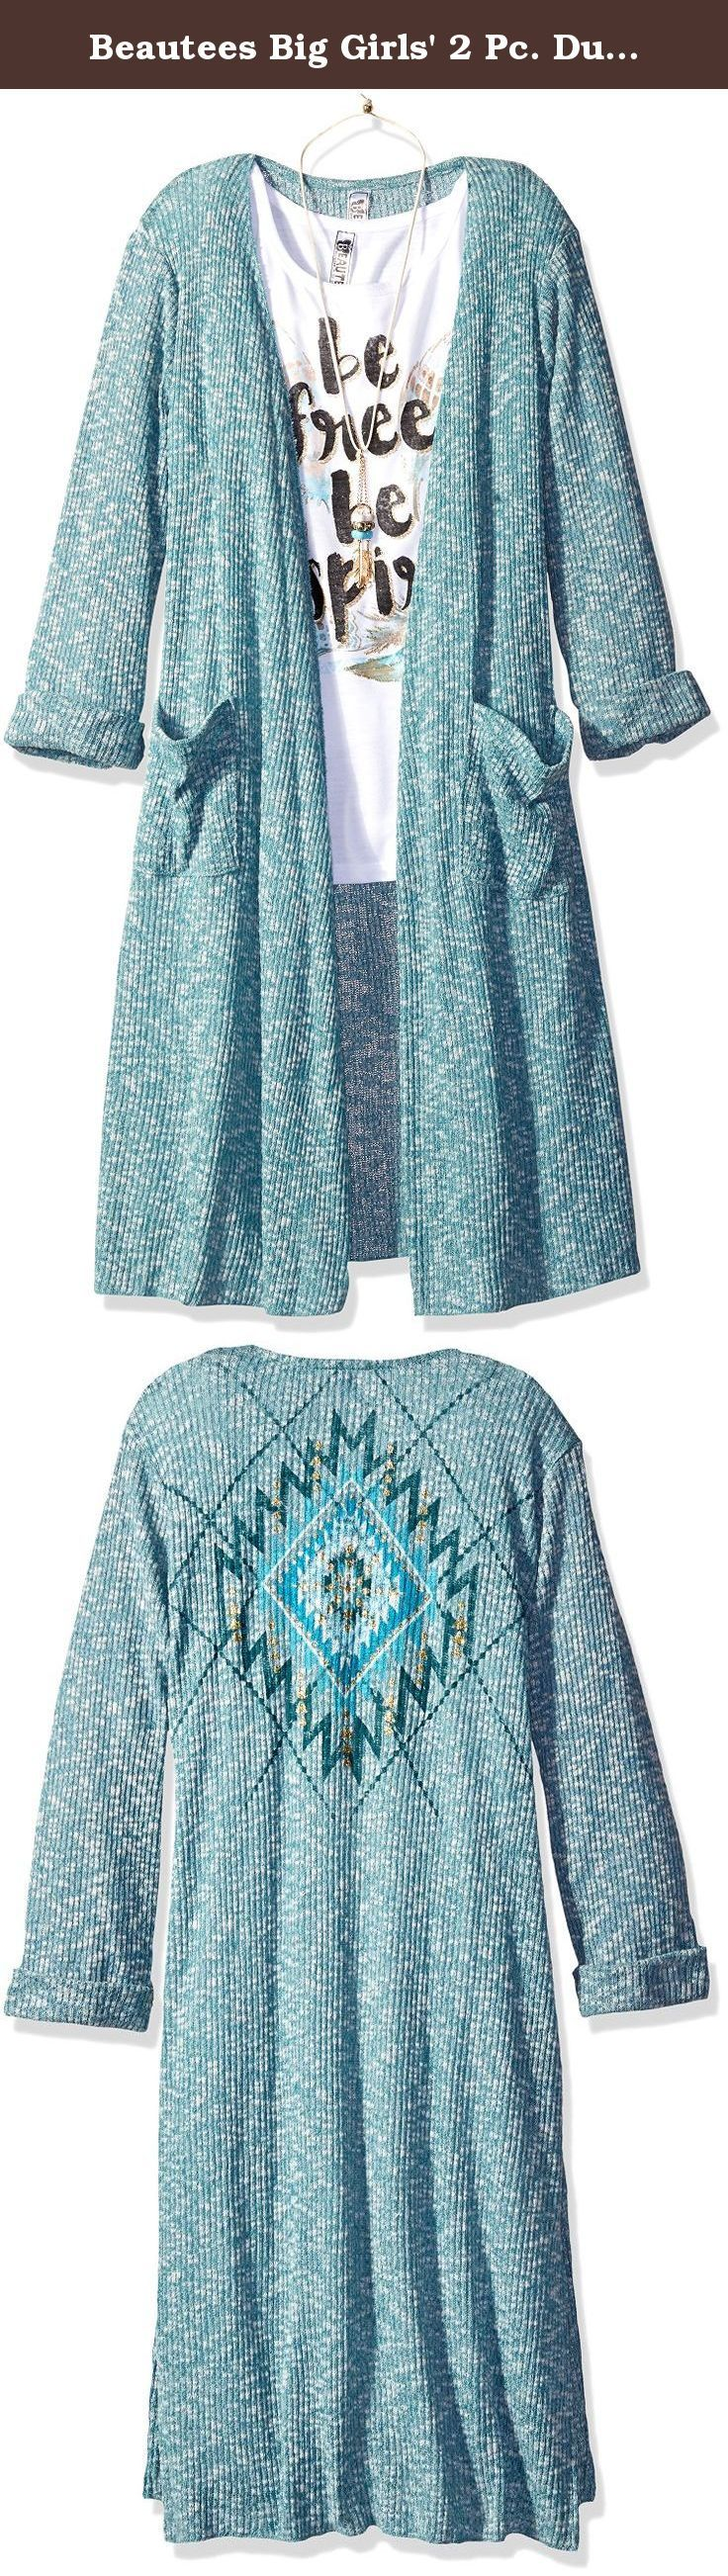 Beautees Big Girls' 2 Pc. Duster Withfeather Scrn, Vintage Teal, Large. Two piece inspired screen top with long Aztec screen duster.